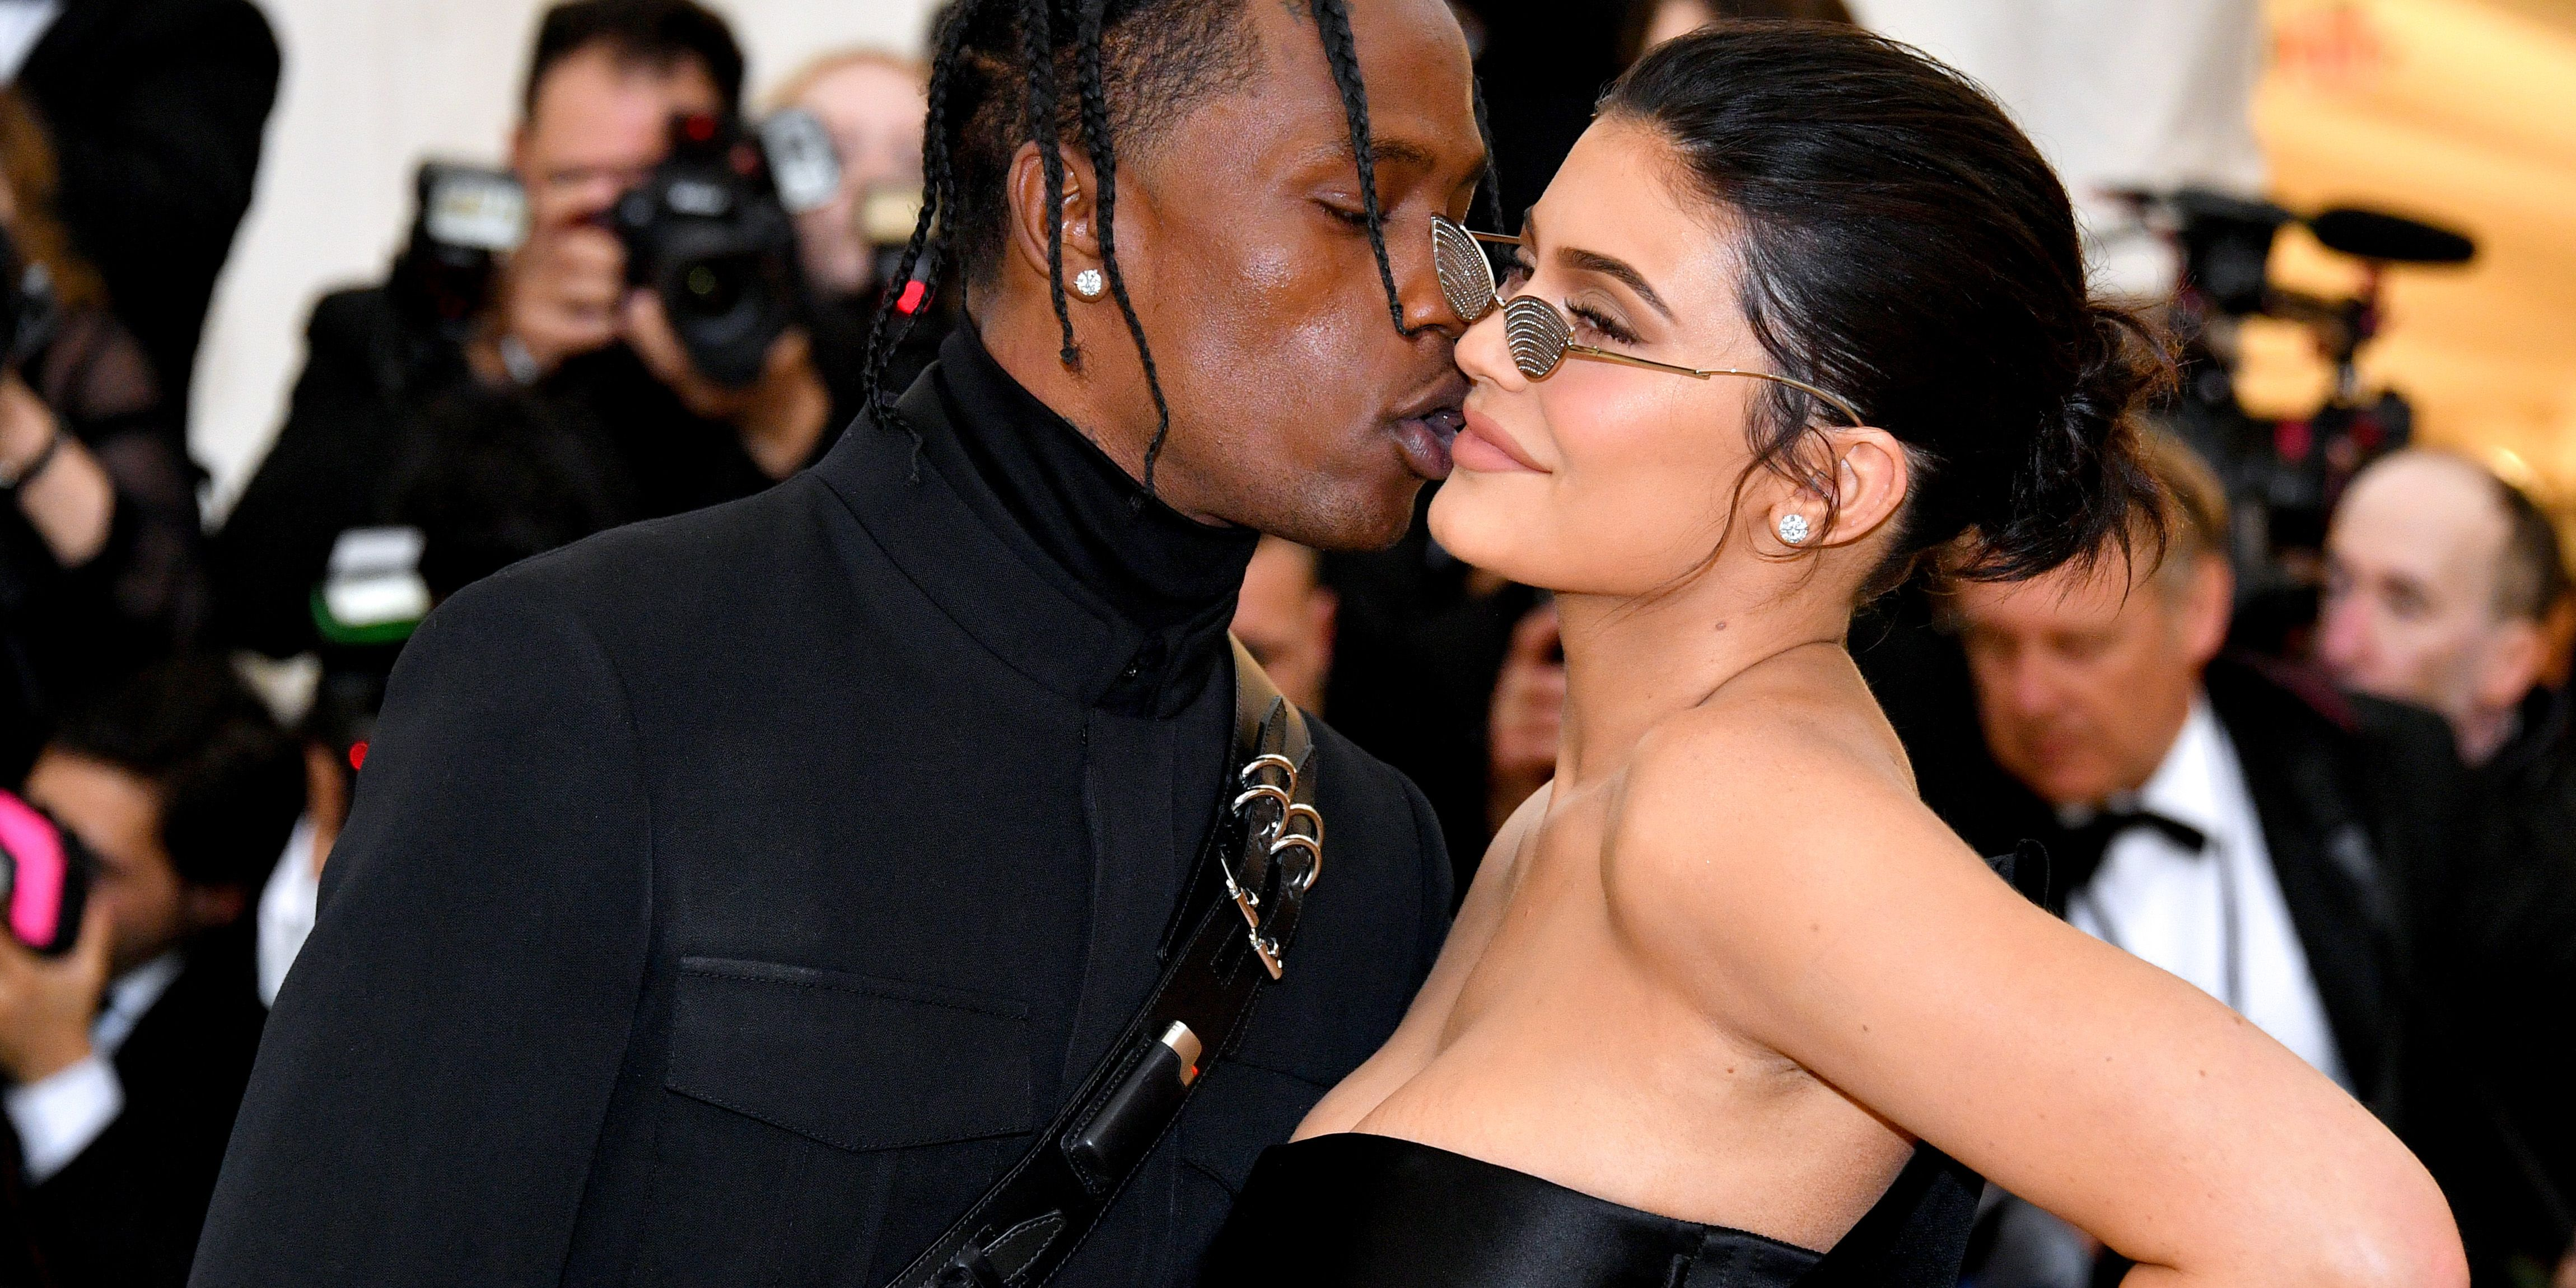 266c49887f9 Kylie Jenner and Travis Scott at Met Gala 2018 - Kylie Jenner First ...